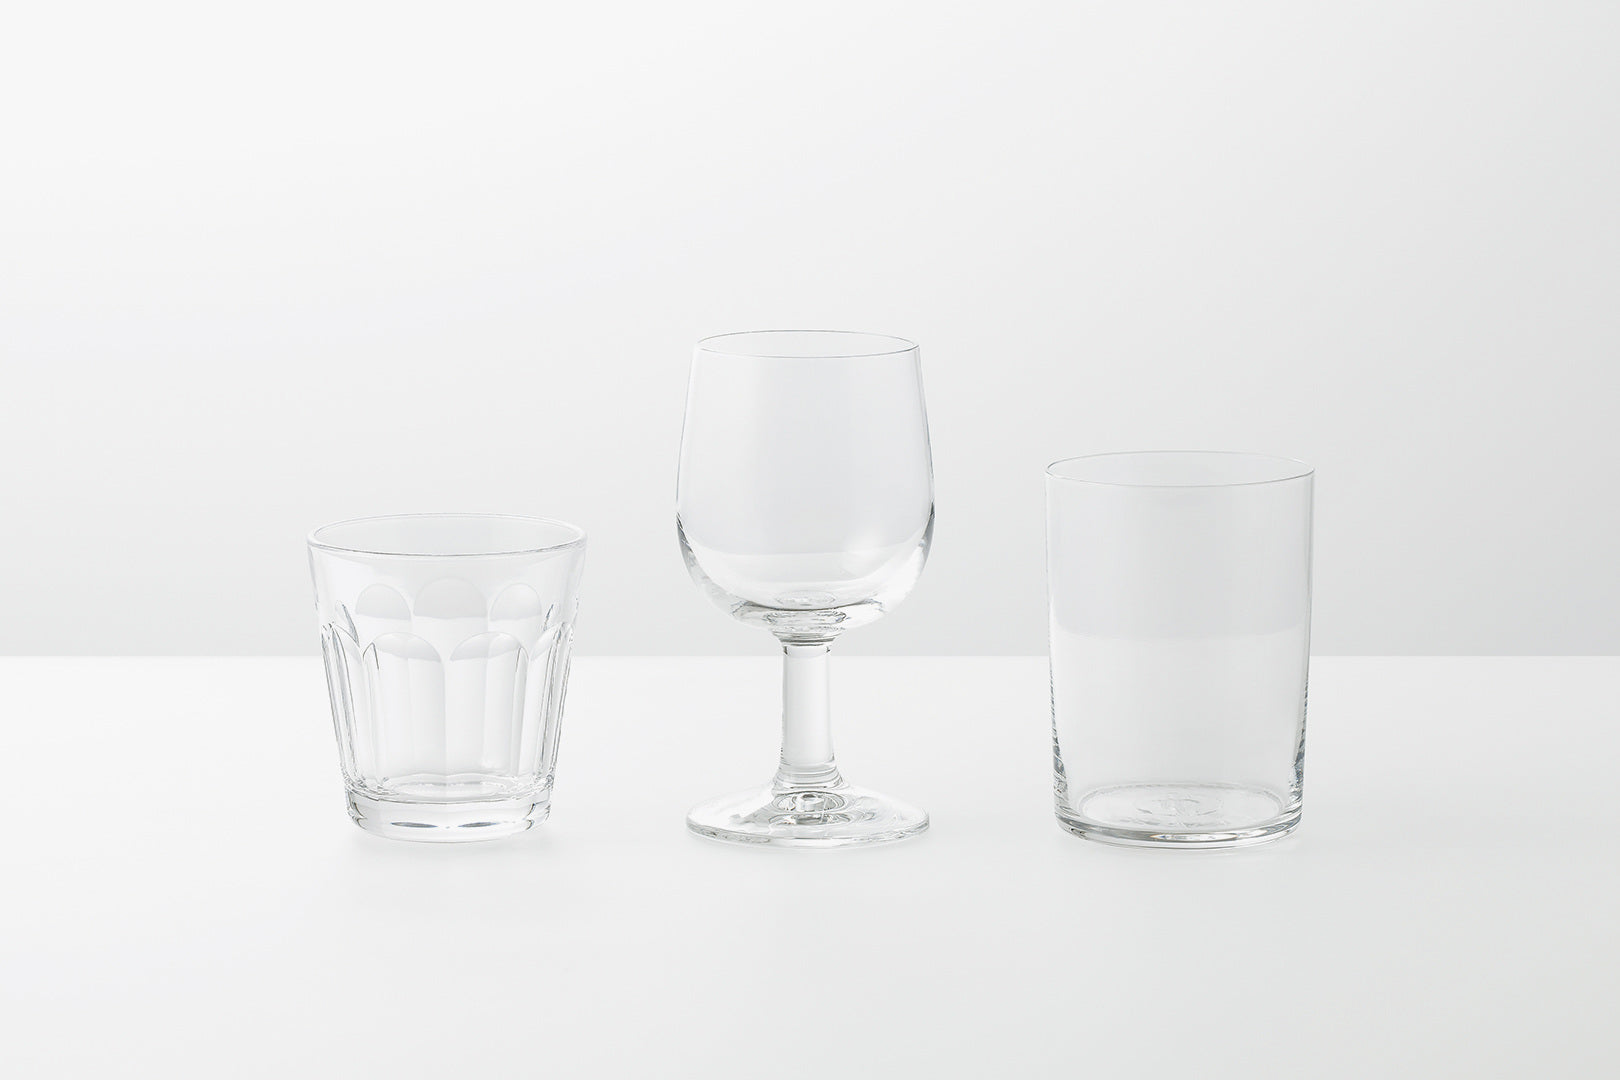 Common Wine Glass Yota Kakuda Common Japanese glassware Average Toronto Canada Design Store